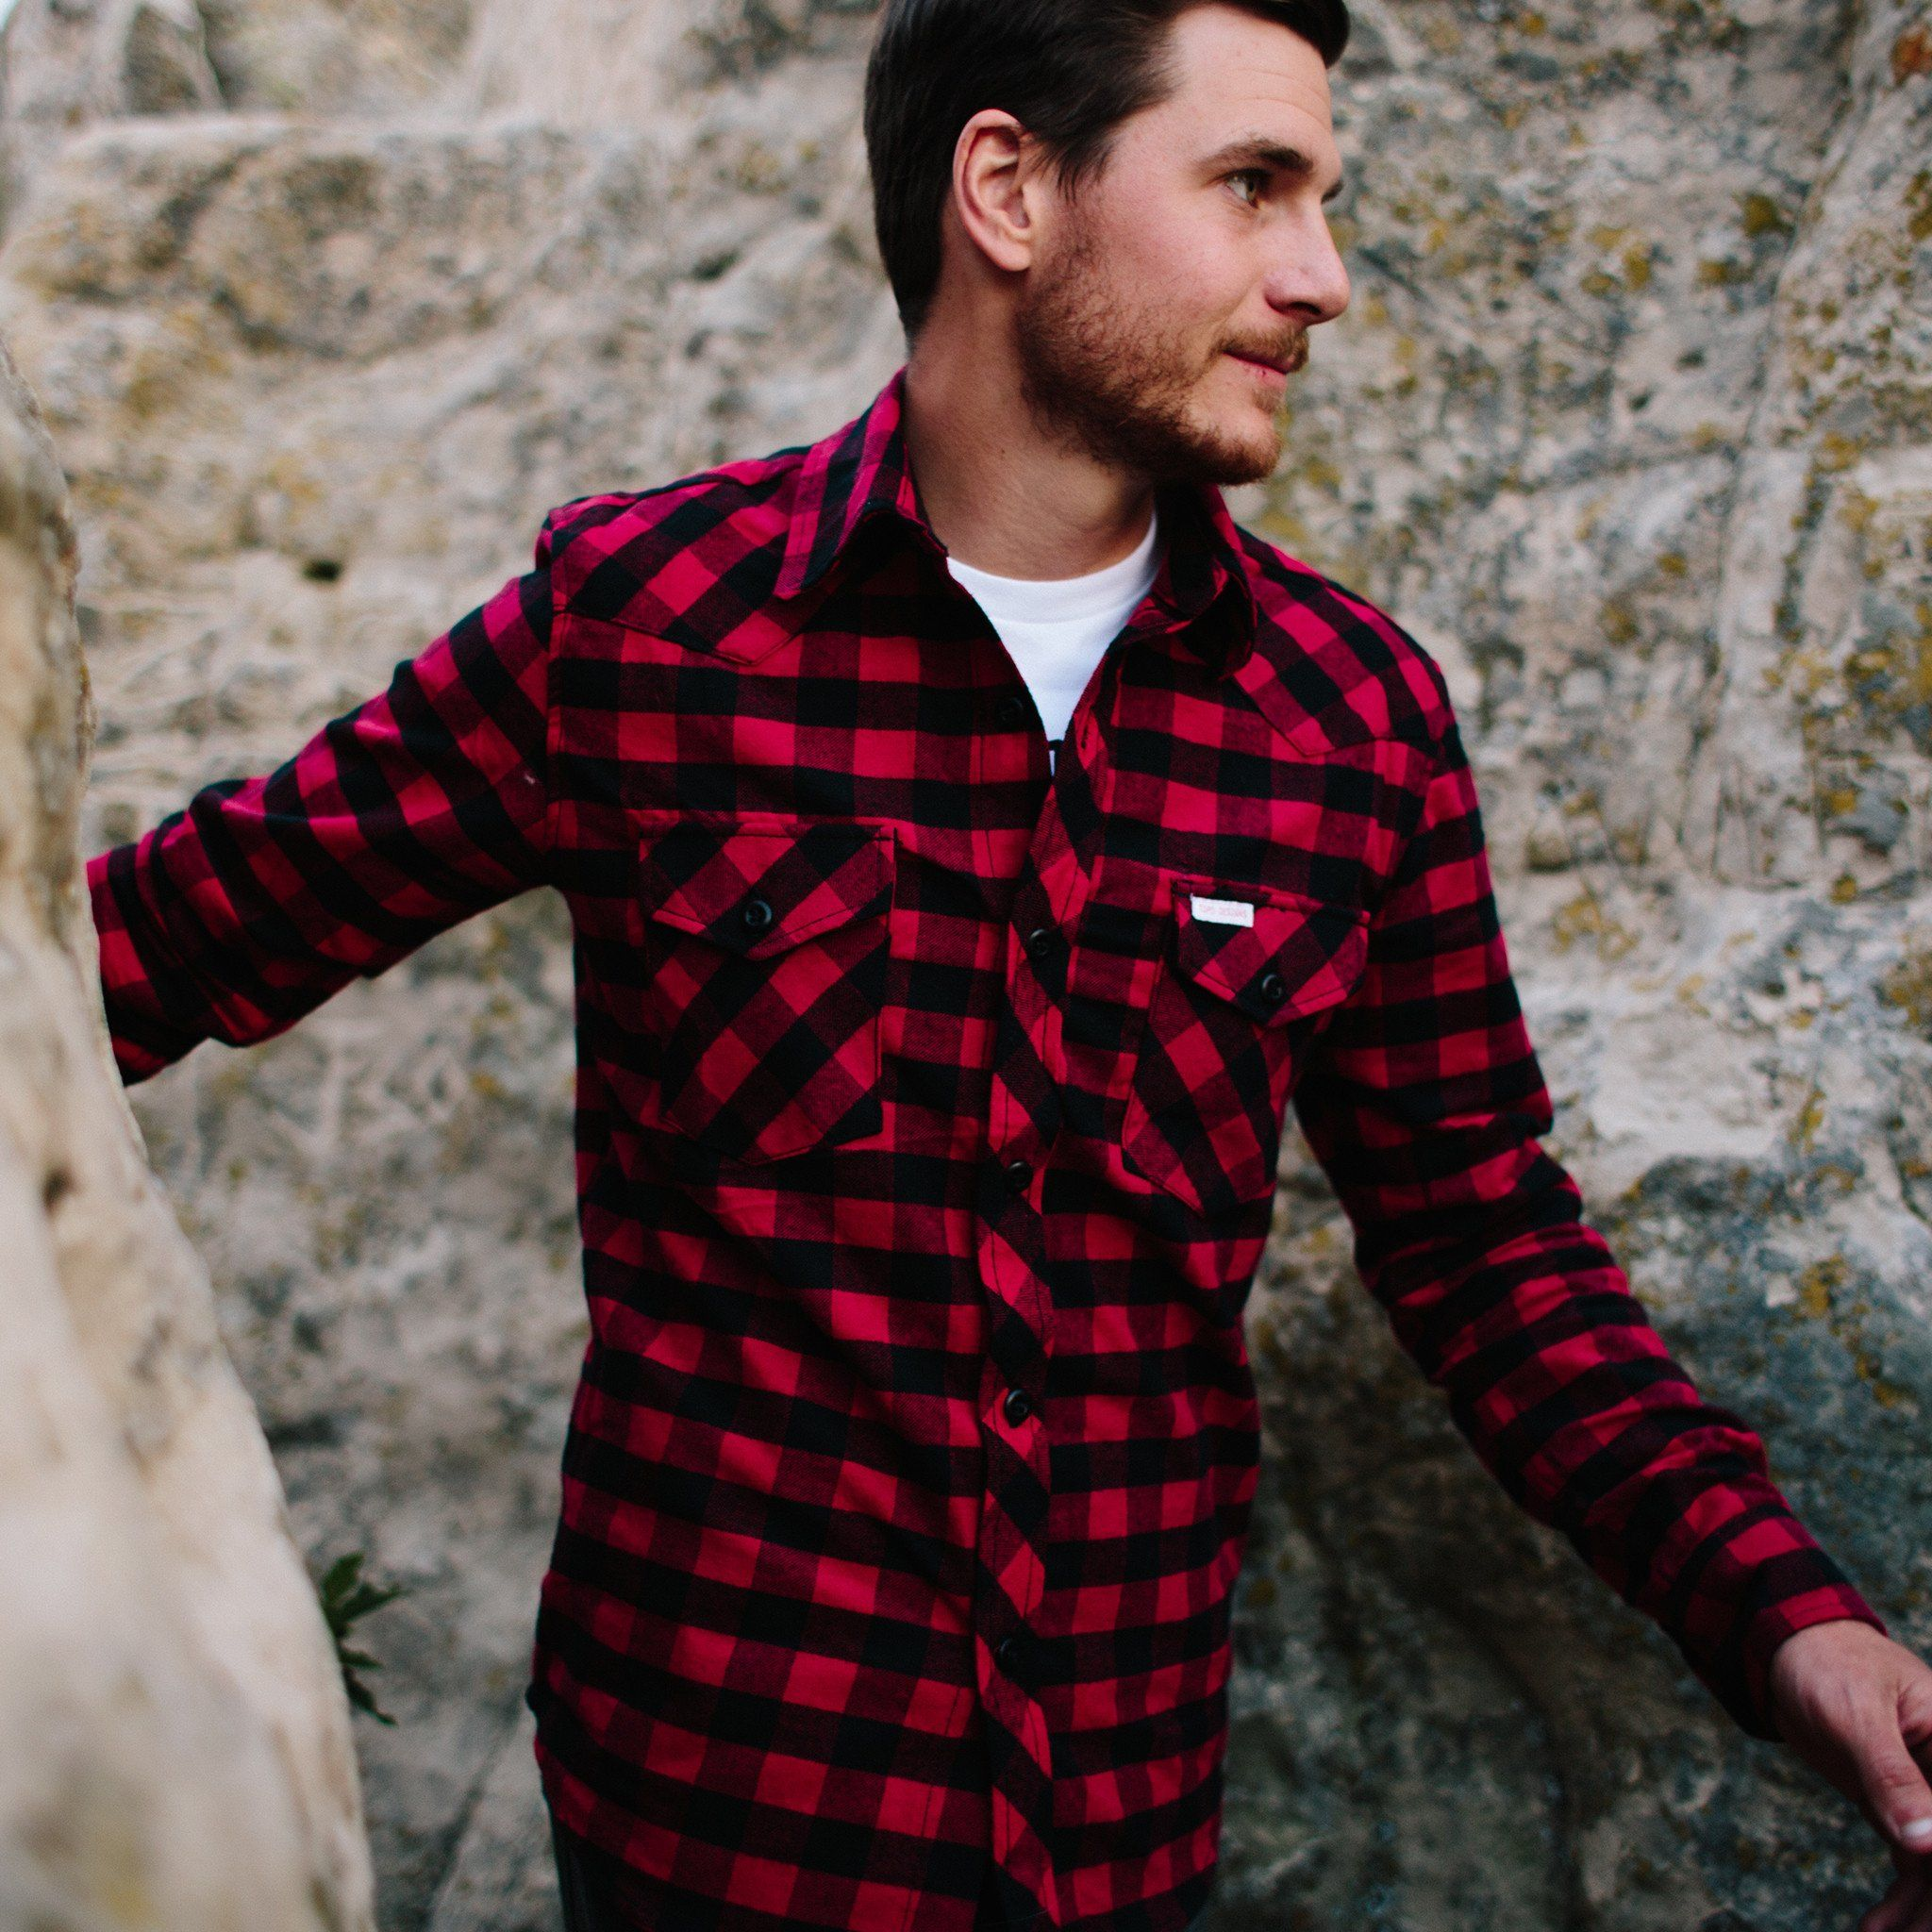 525da4036 Topo Designs Mountain Shirt Plaid Flannel  http://topodesigns.com/collections/